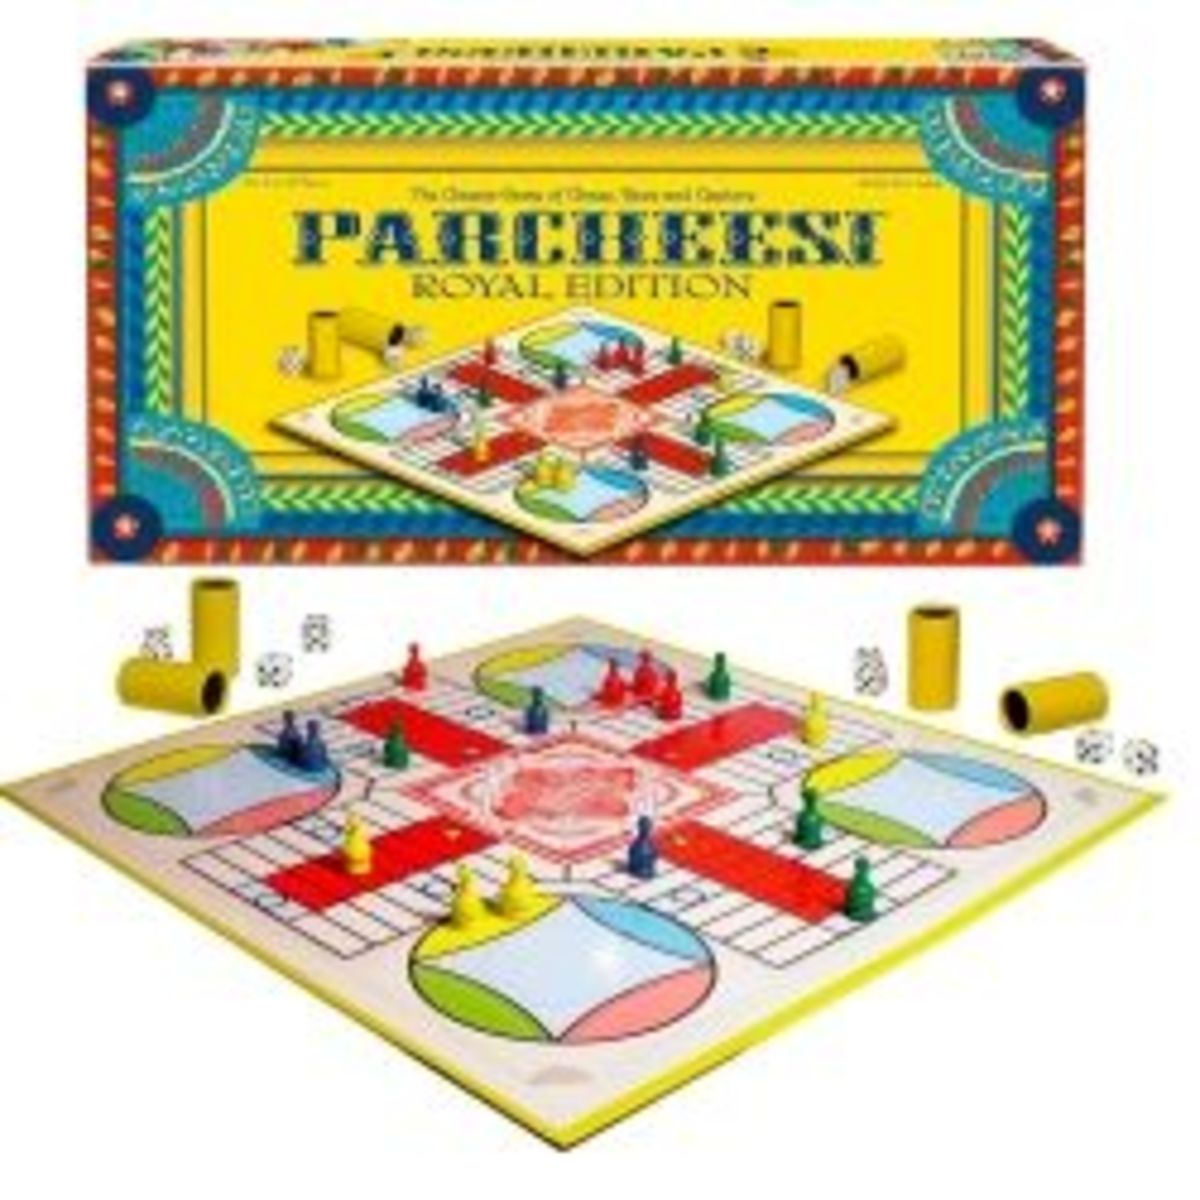 The Royal Edition Parcheesi Board Game